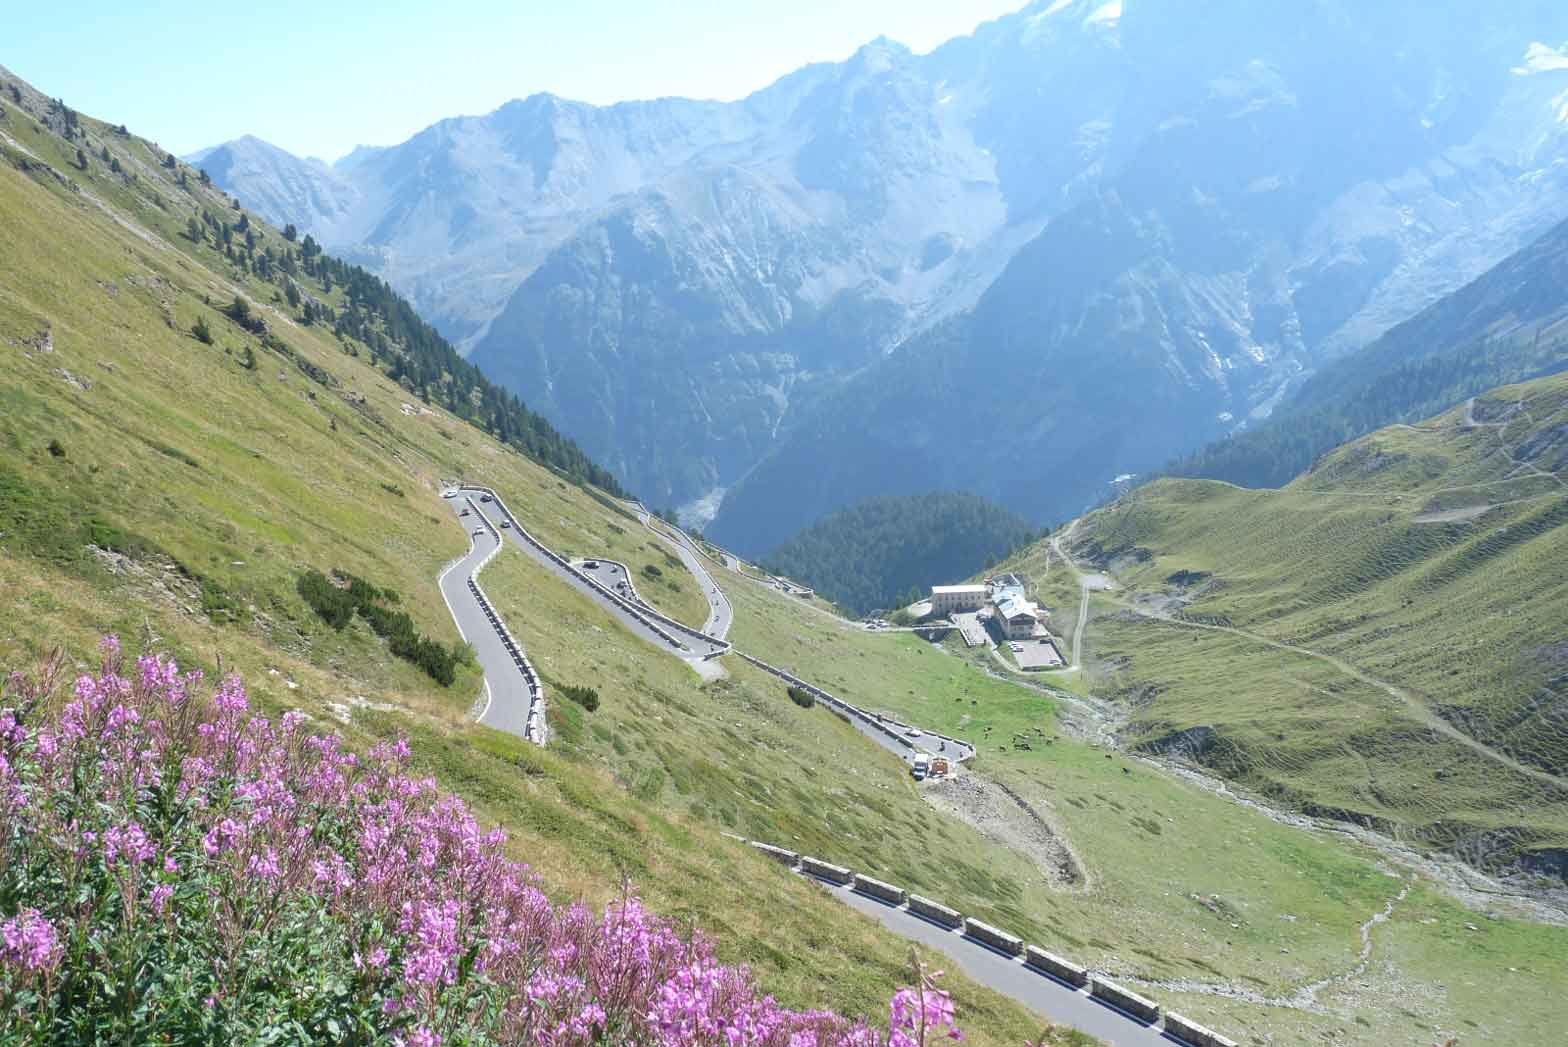 The Stelvio Pass panorama